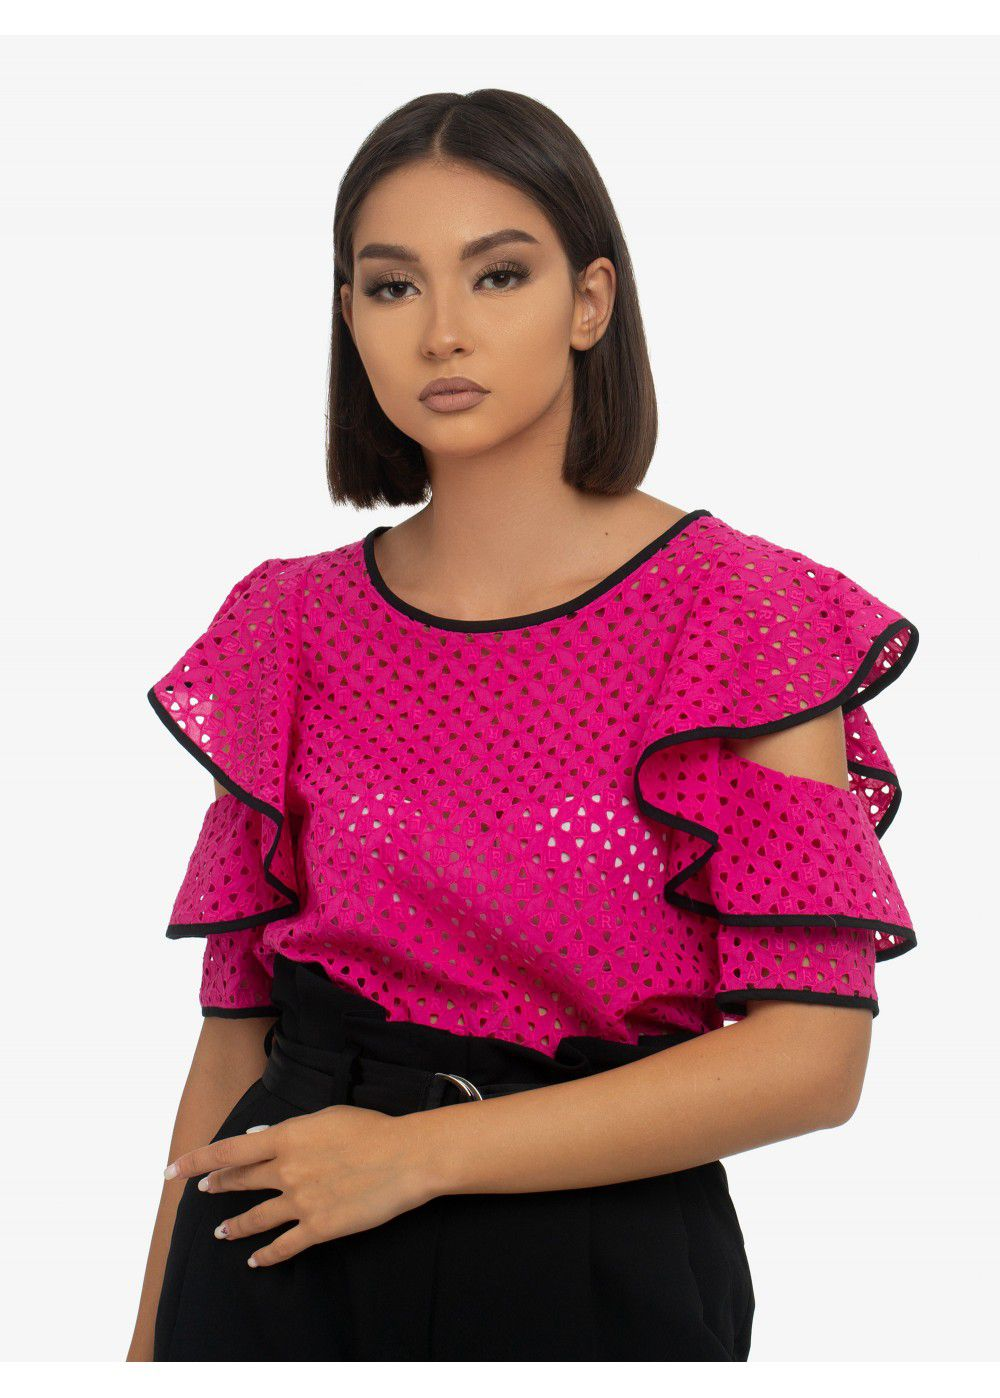 Karl Lagerfeld Broderie Anglaise Top in Fuchsia